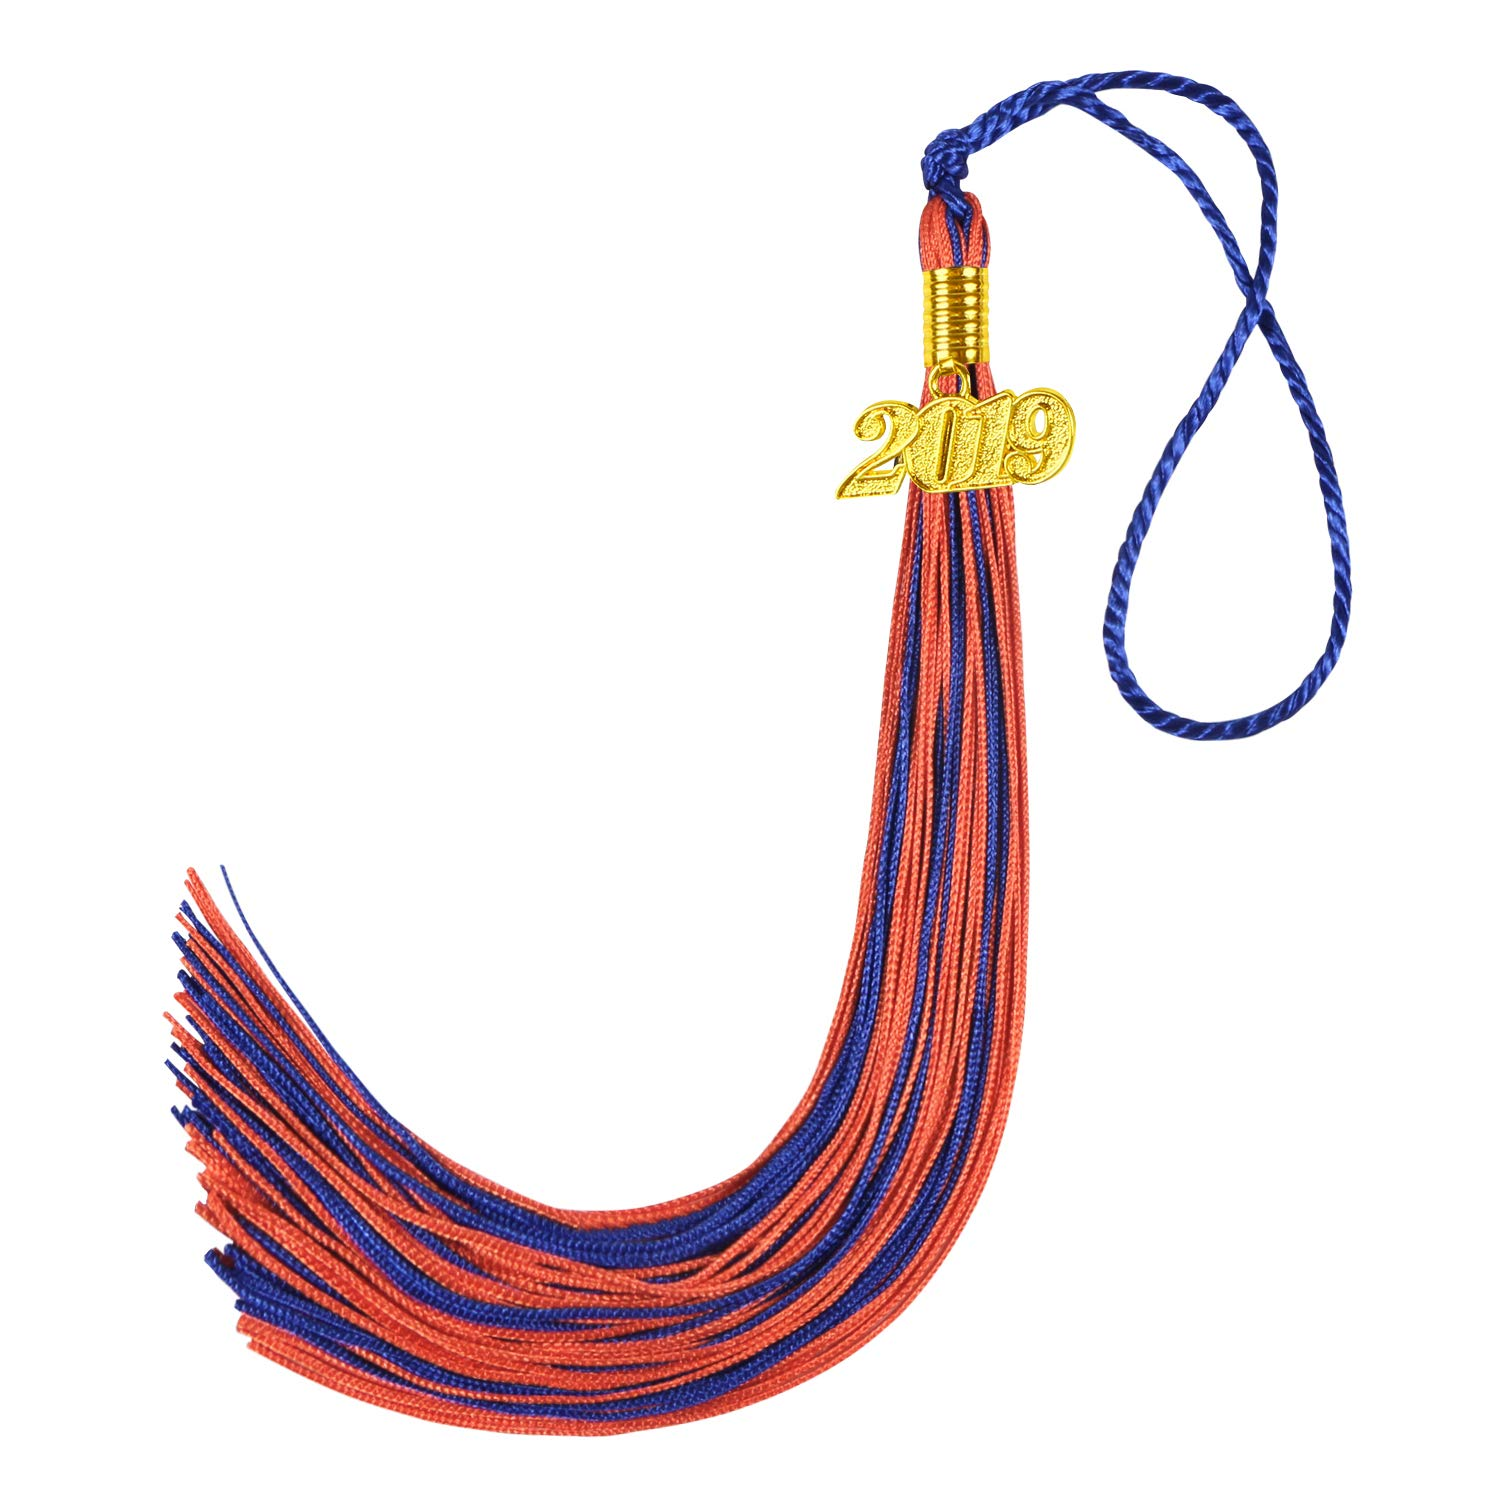 Kissbuty Uniforms Graduation Tassel with 2019 Gold Year Charm for Graduation Photography Party Double Color Graduation Cap Tassel Royal Blue and Orange